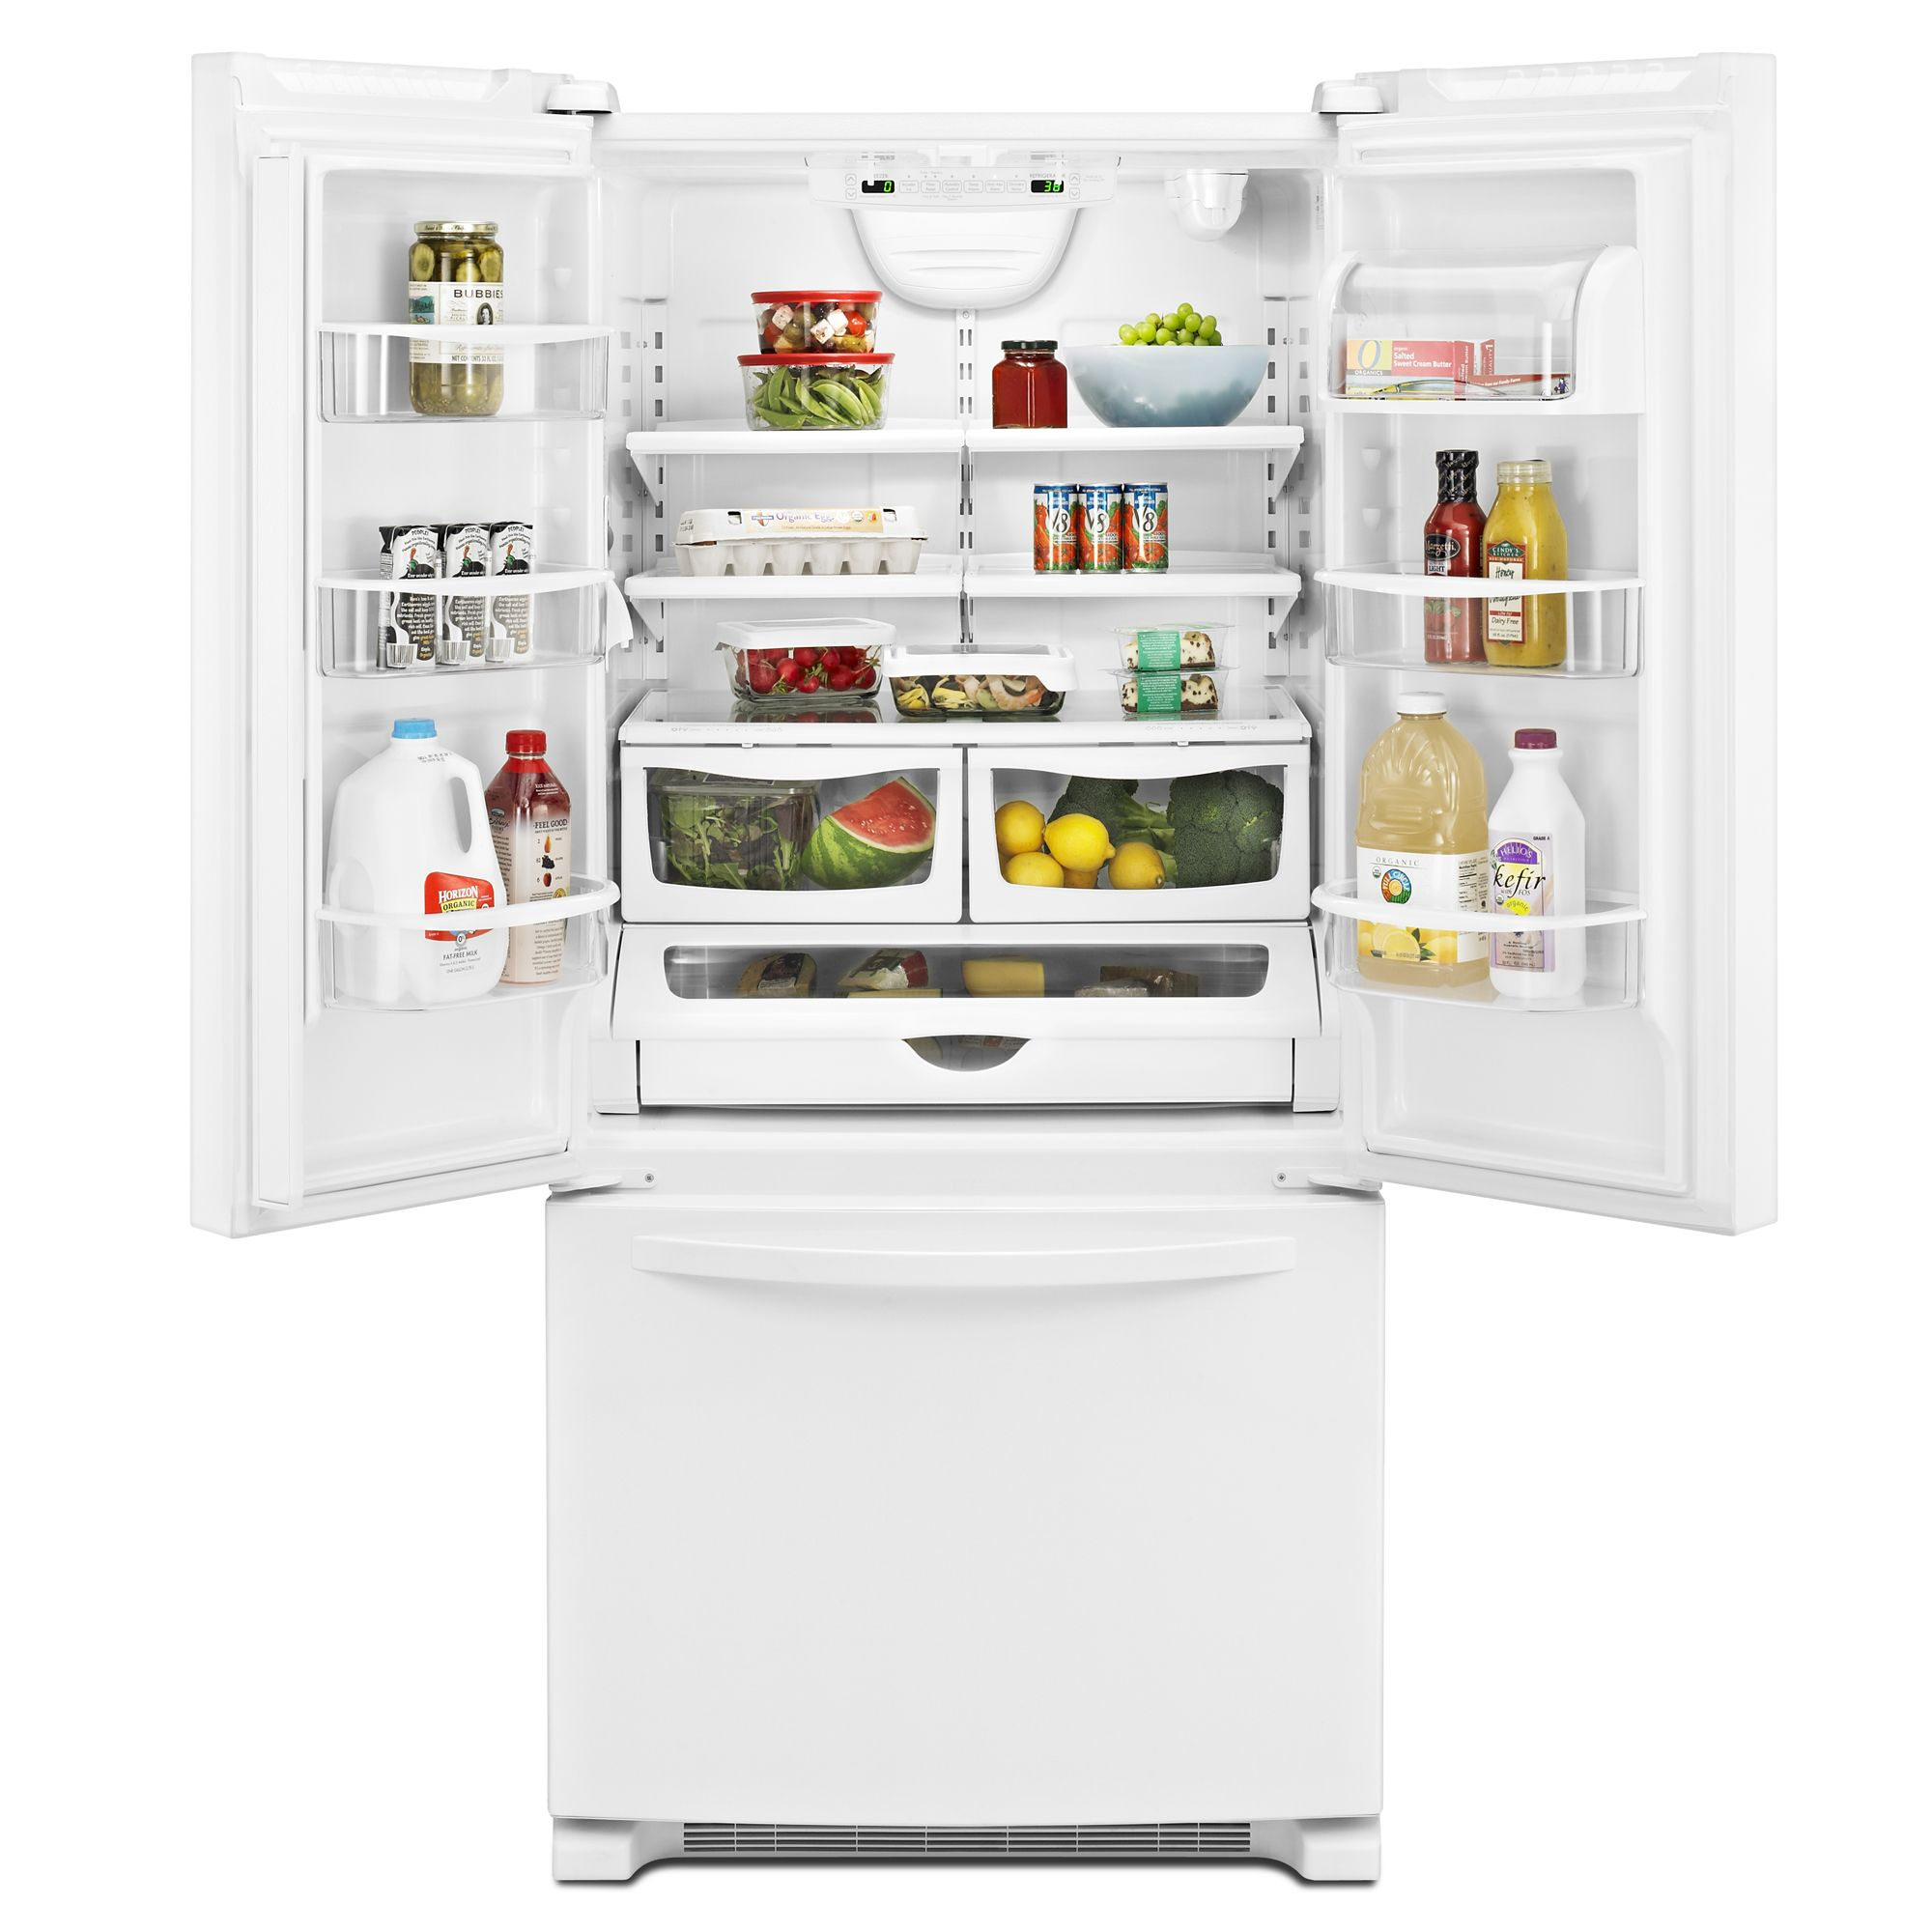 Kenmore 21.9 cu. ft. French-Door Bottom-Freezer Refrigerator w/Internal Dispenser - White